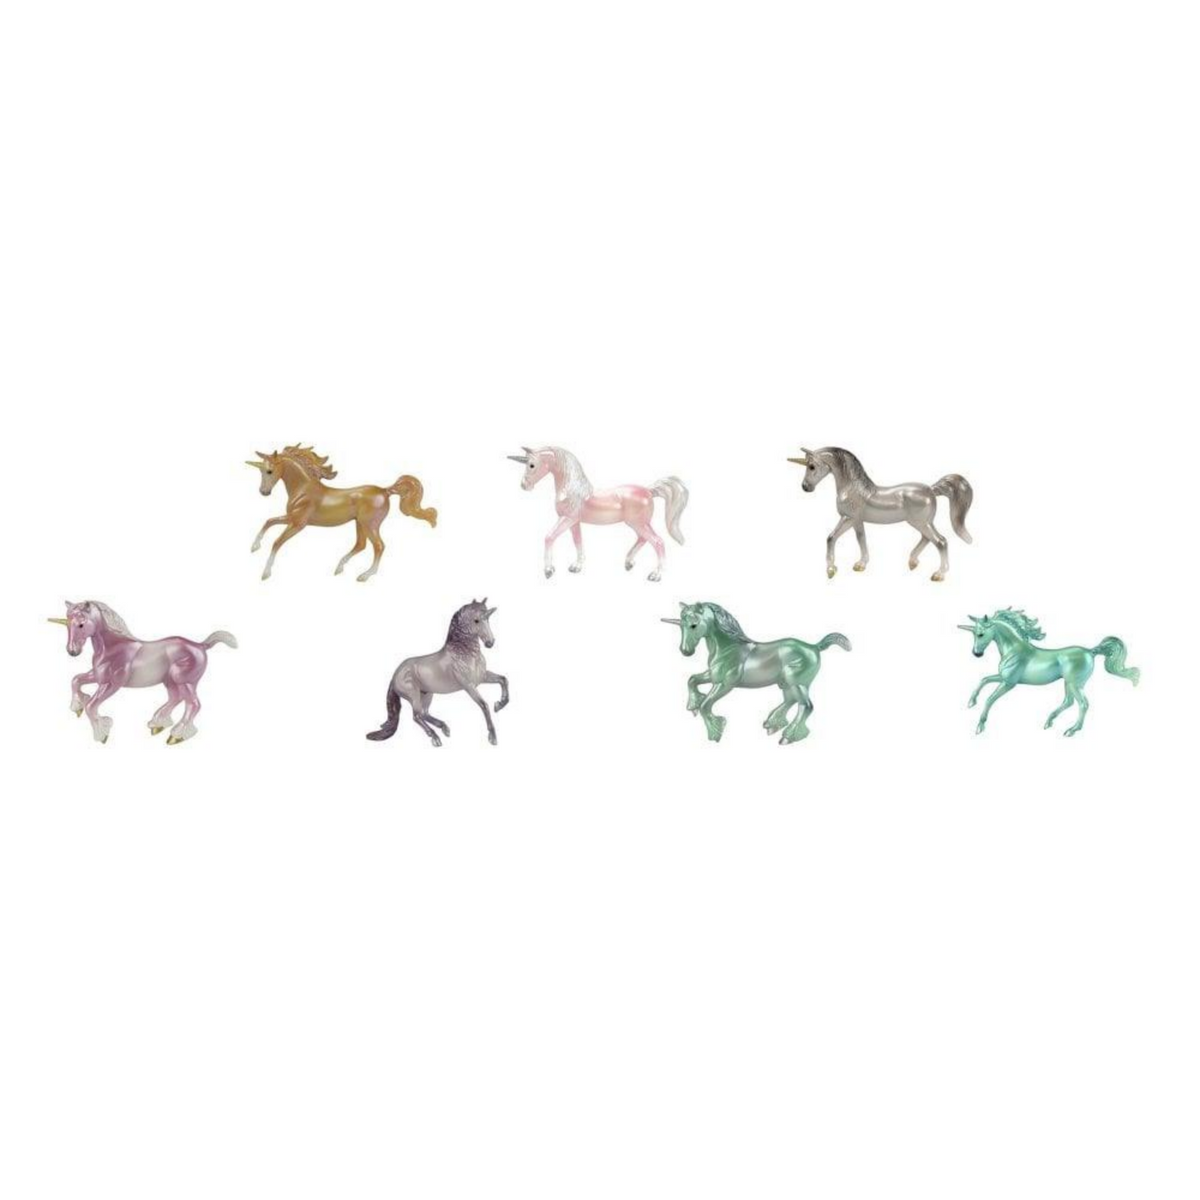 Breyer Breyer Stablemates Unicorn Mystery Surprise